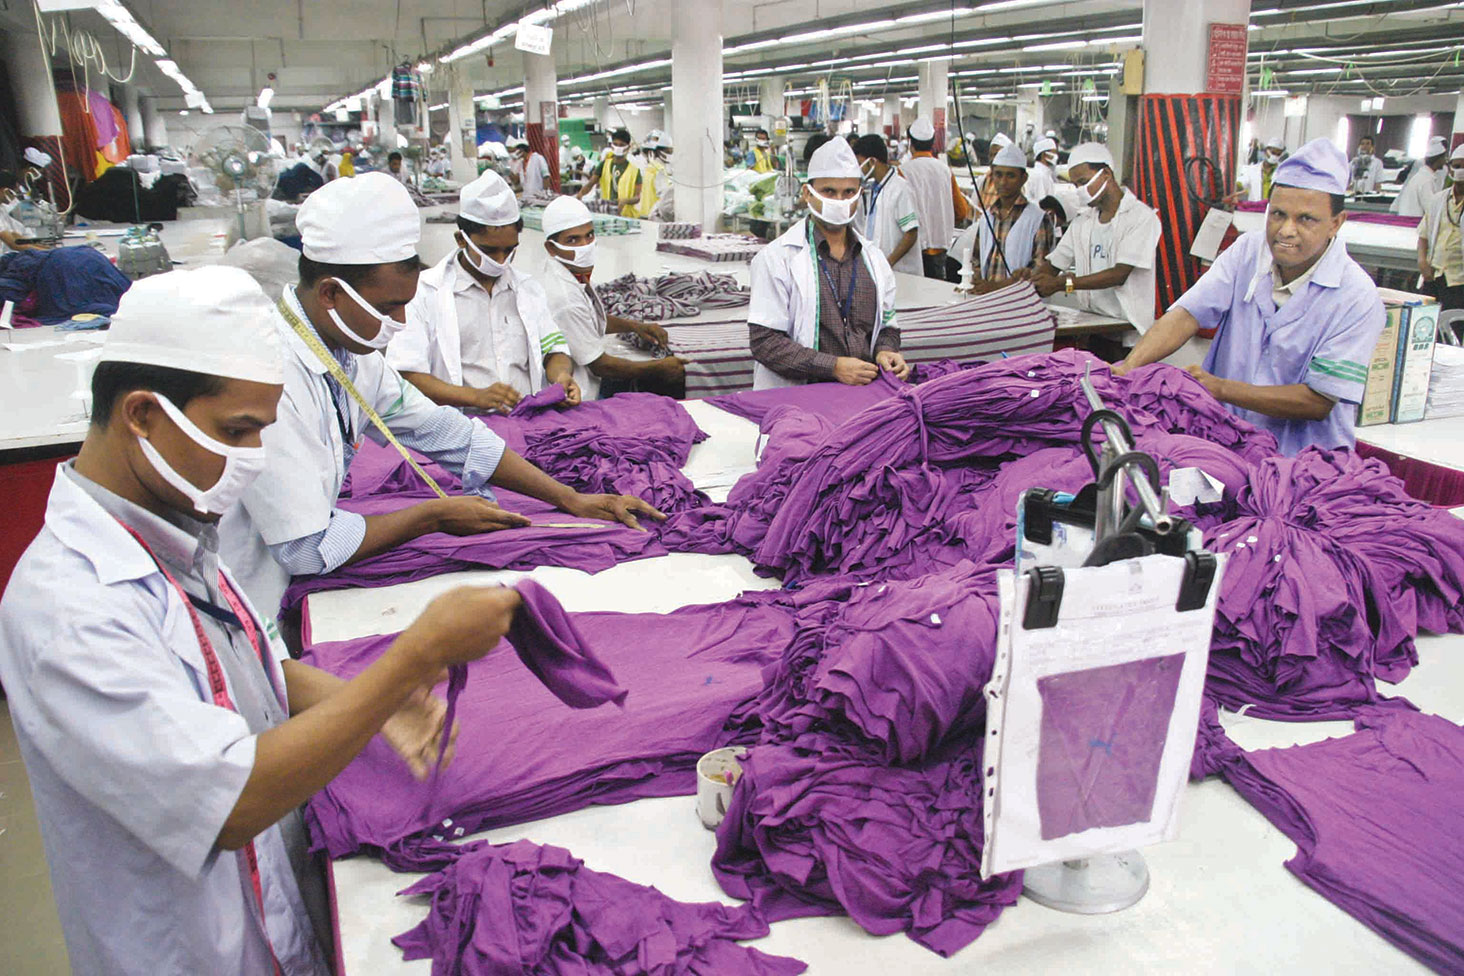 industrial labor relations of garment industries